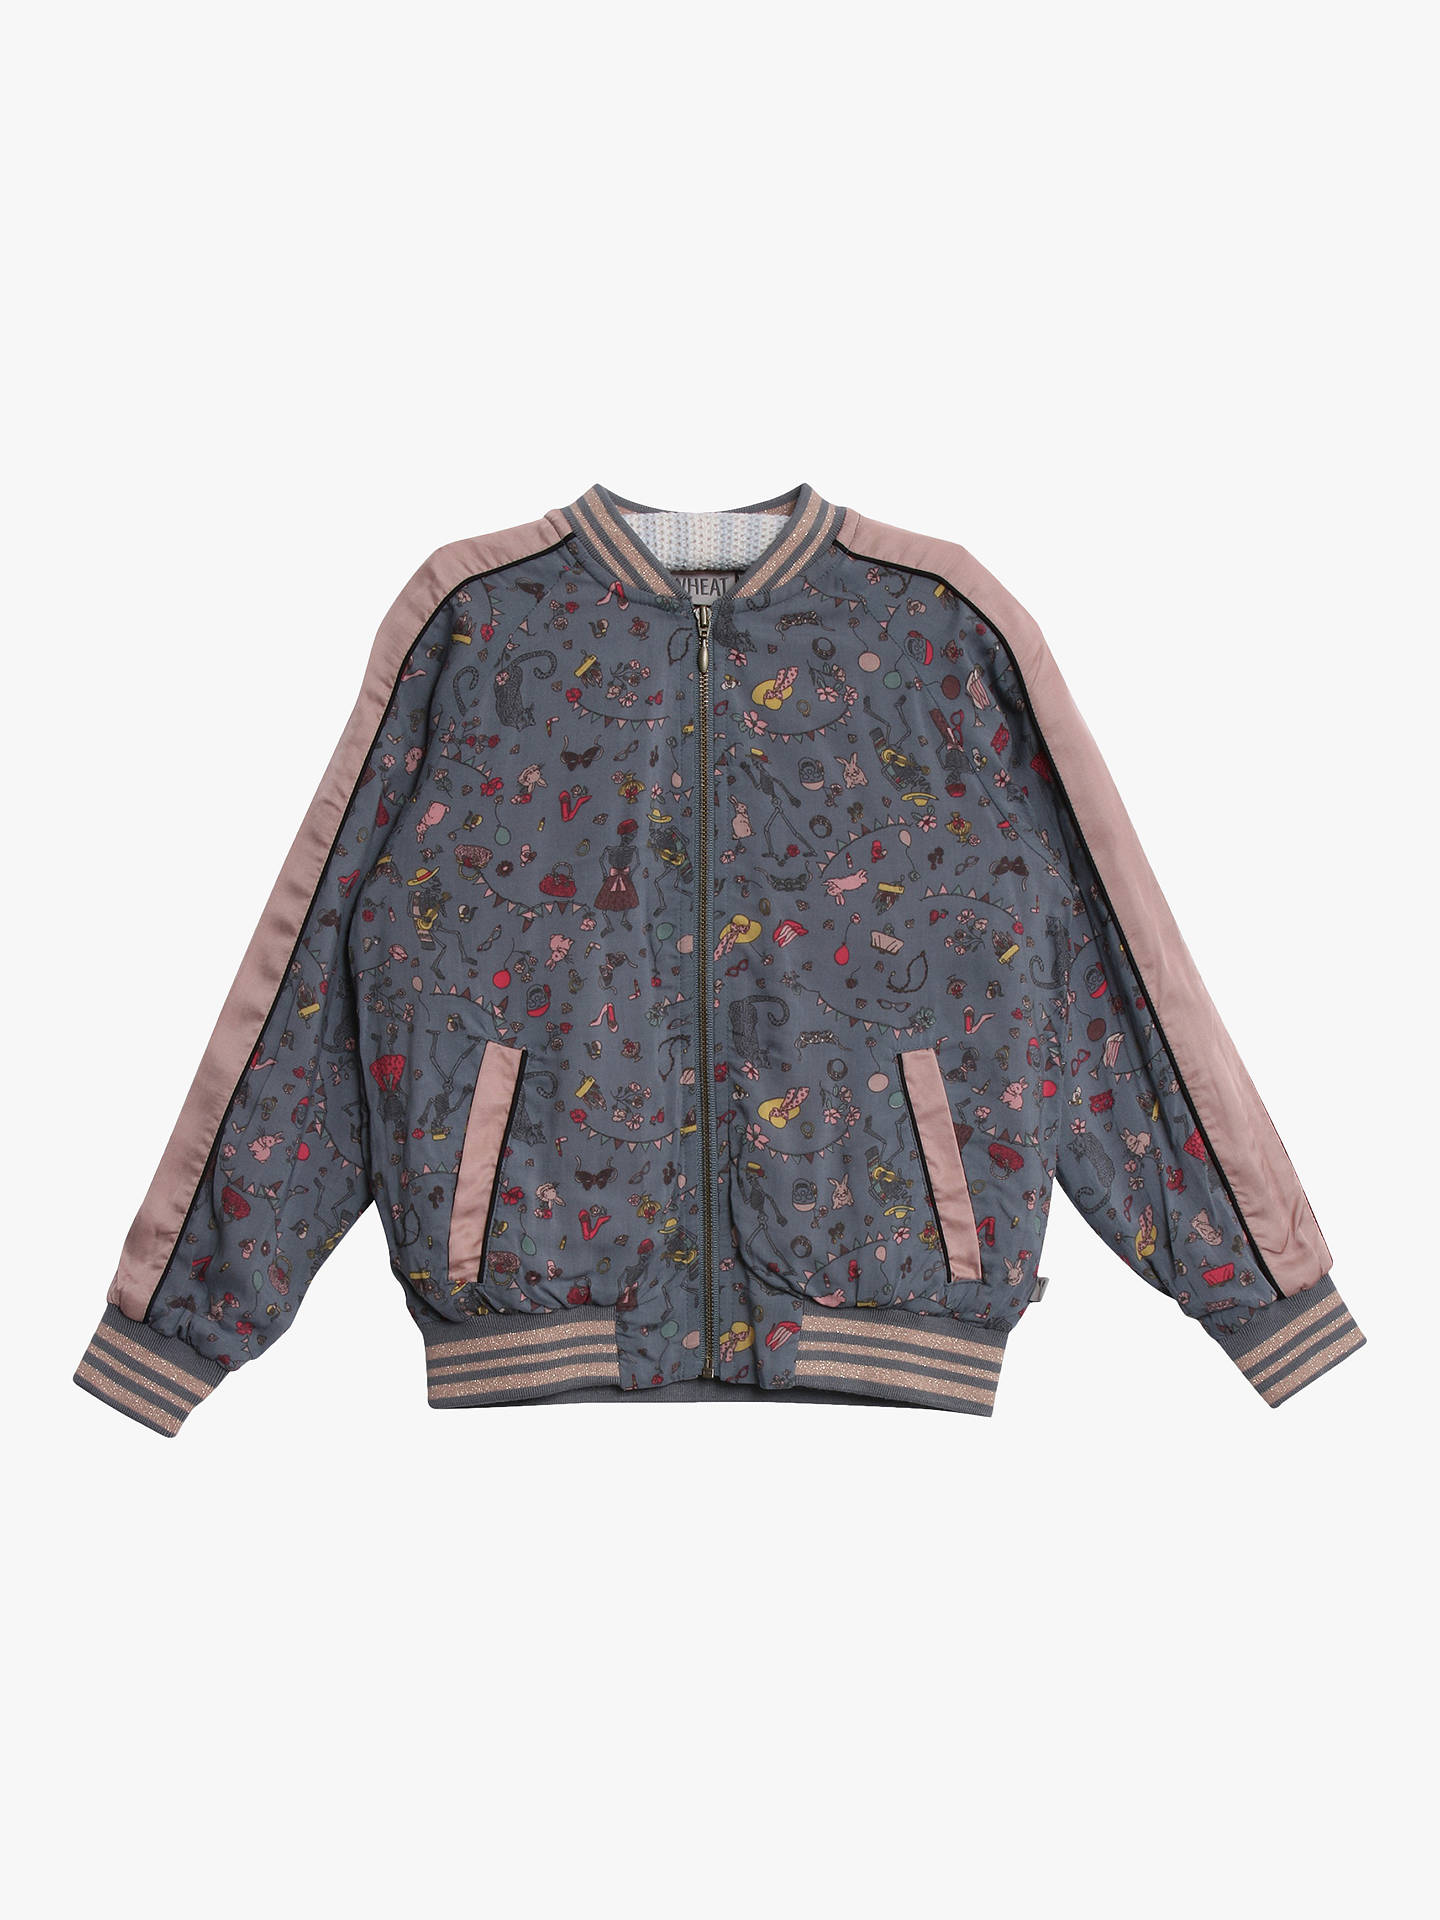 2ca38b681 Wheat Girls' Printed Bomber Jacket, Dove at John Lewis & Partners